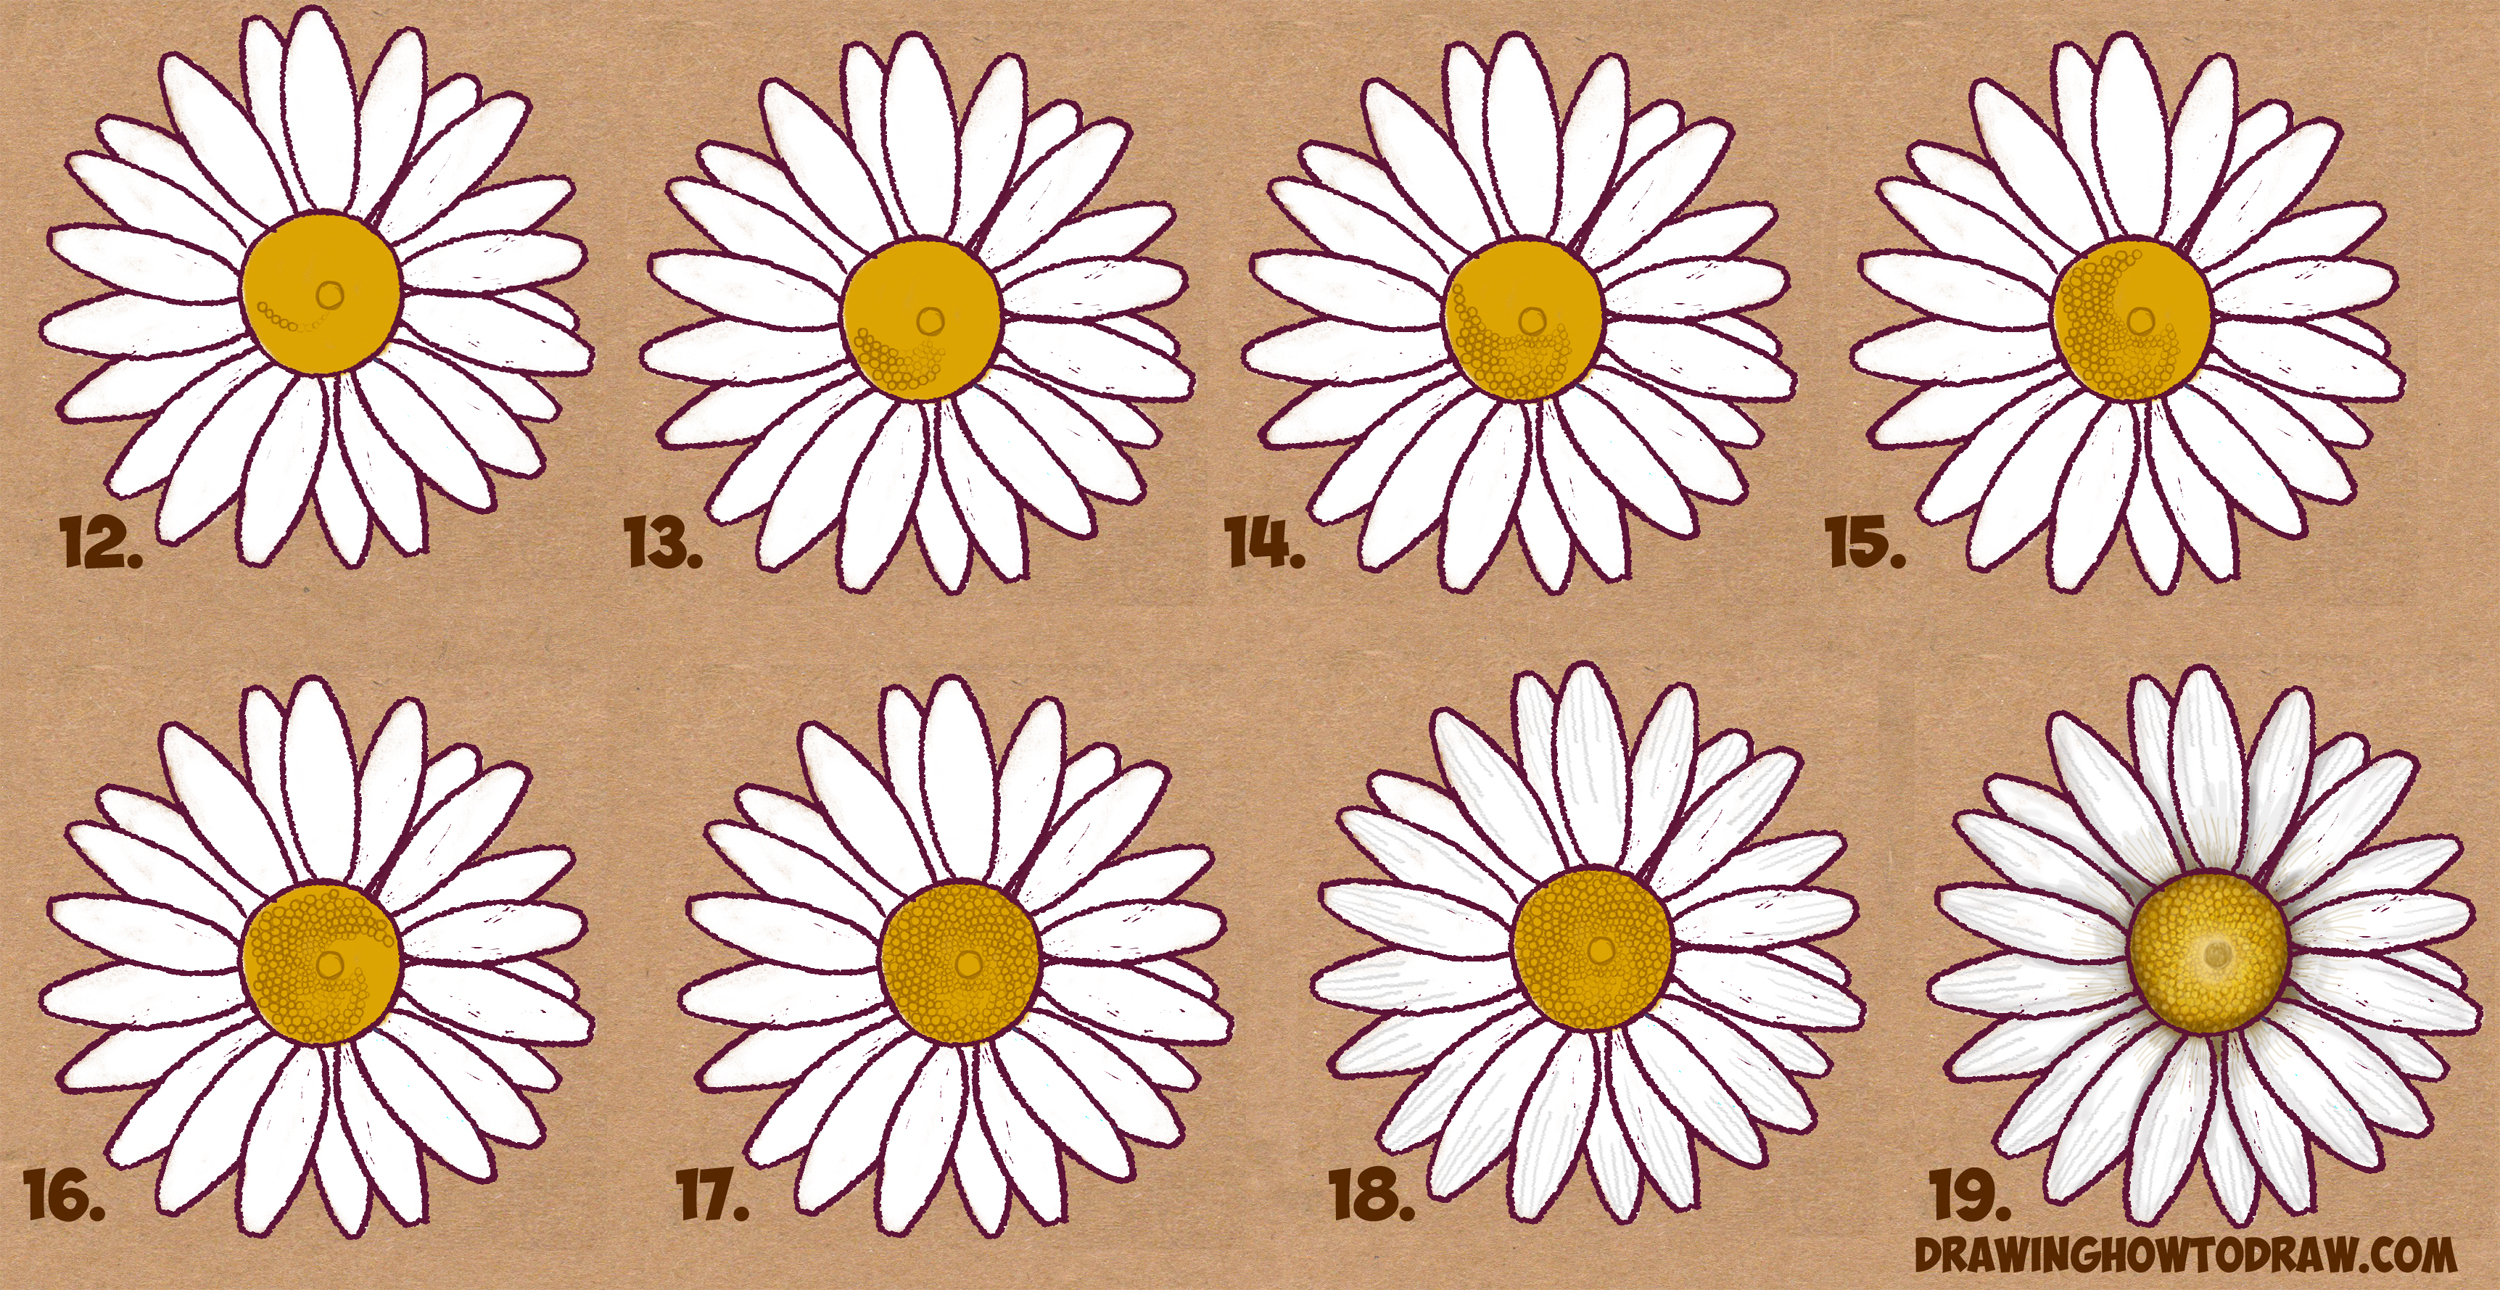 2500x1290 Drawing Of A Daisy How To Draw A Daisy Flower (Daisies) In Easy